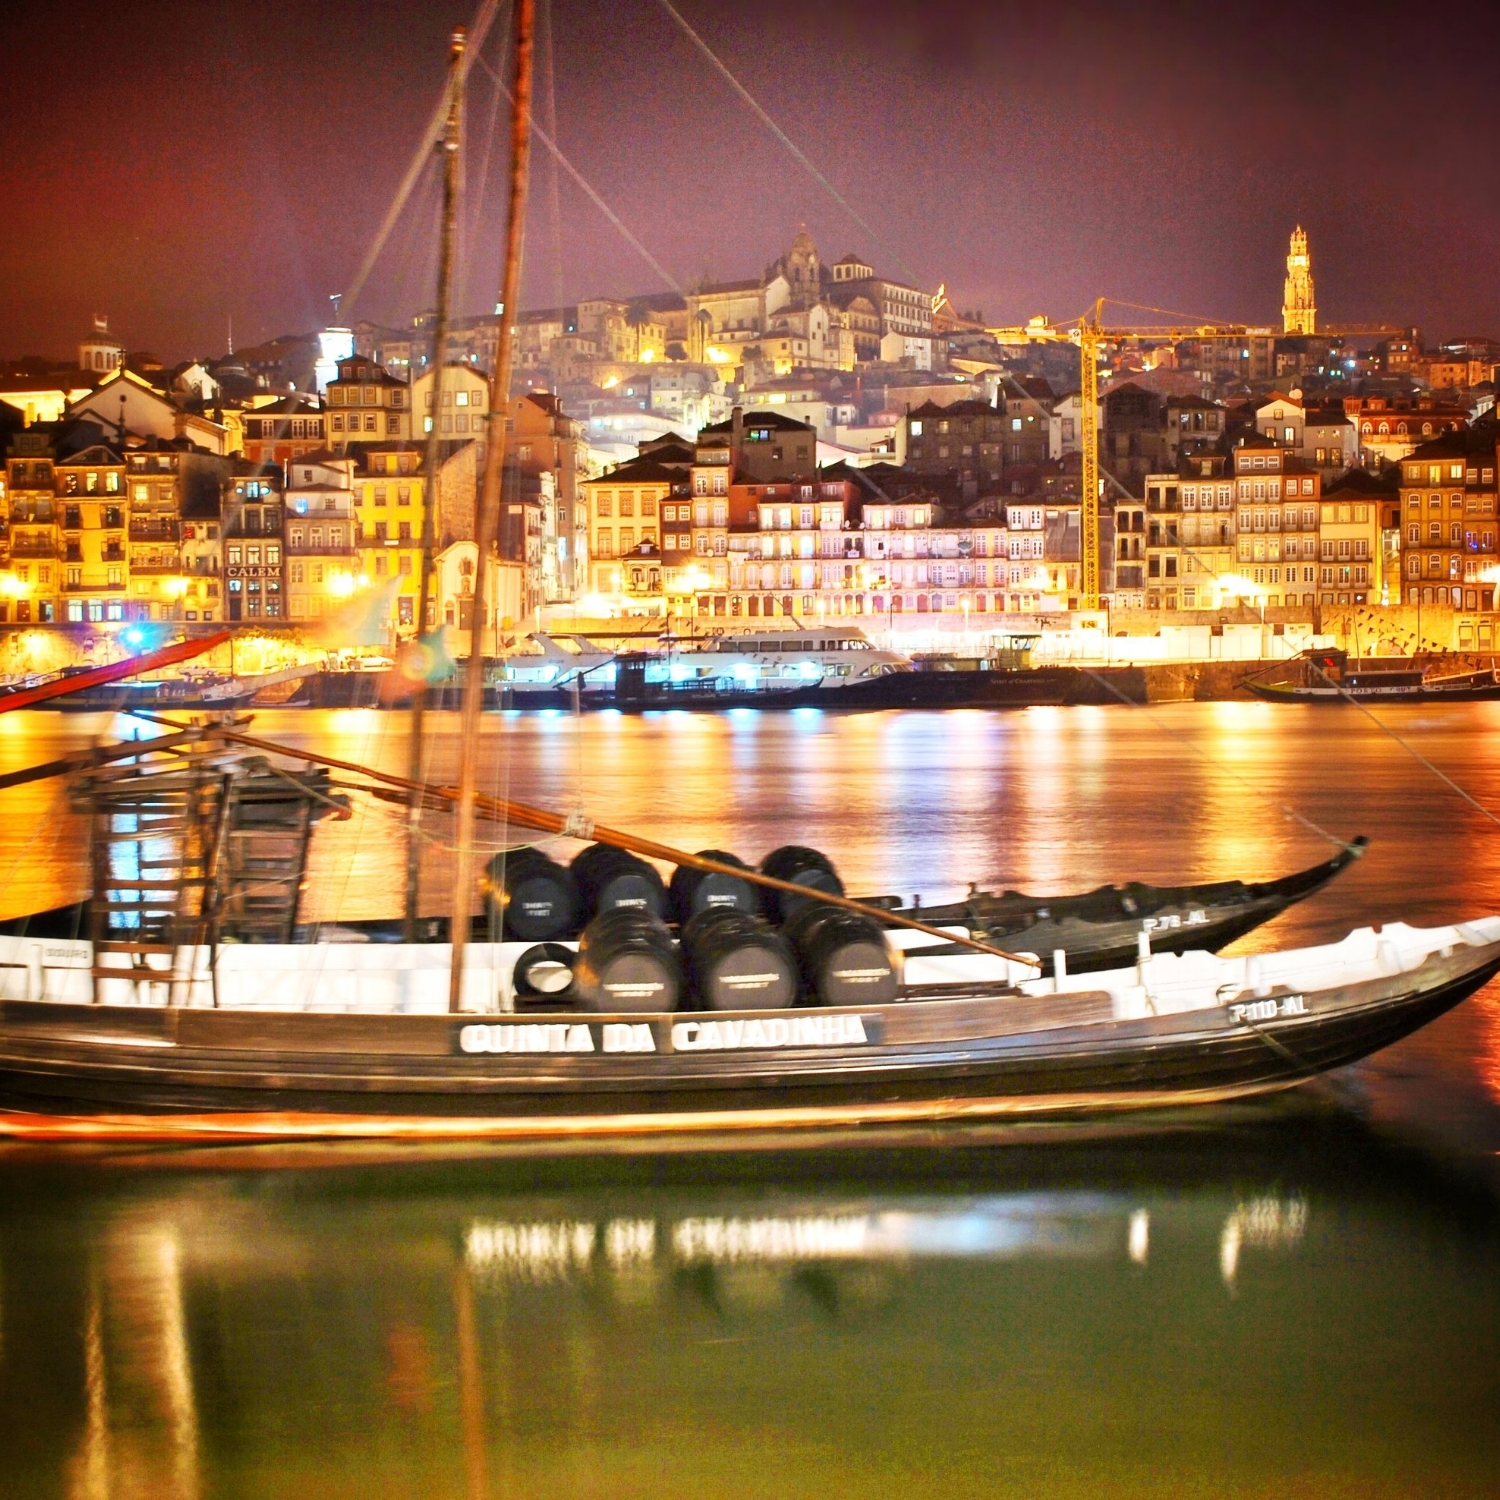 Rabelo boats in Porto at night. (Taken from the Gaia side of the river.) These boats have traditionally been used to move the port from the vineyards in the Duoro Valley to the cellers in Porto and Gaia, but now are more of a tourist attraction. (Photo Credit Greg Hudson)